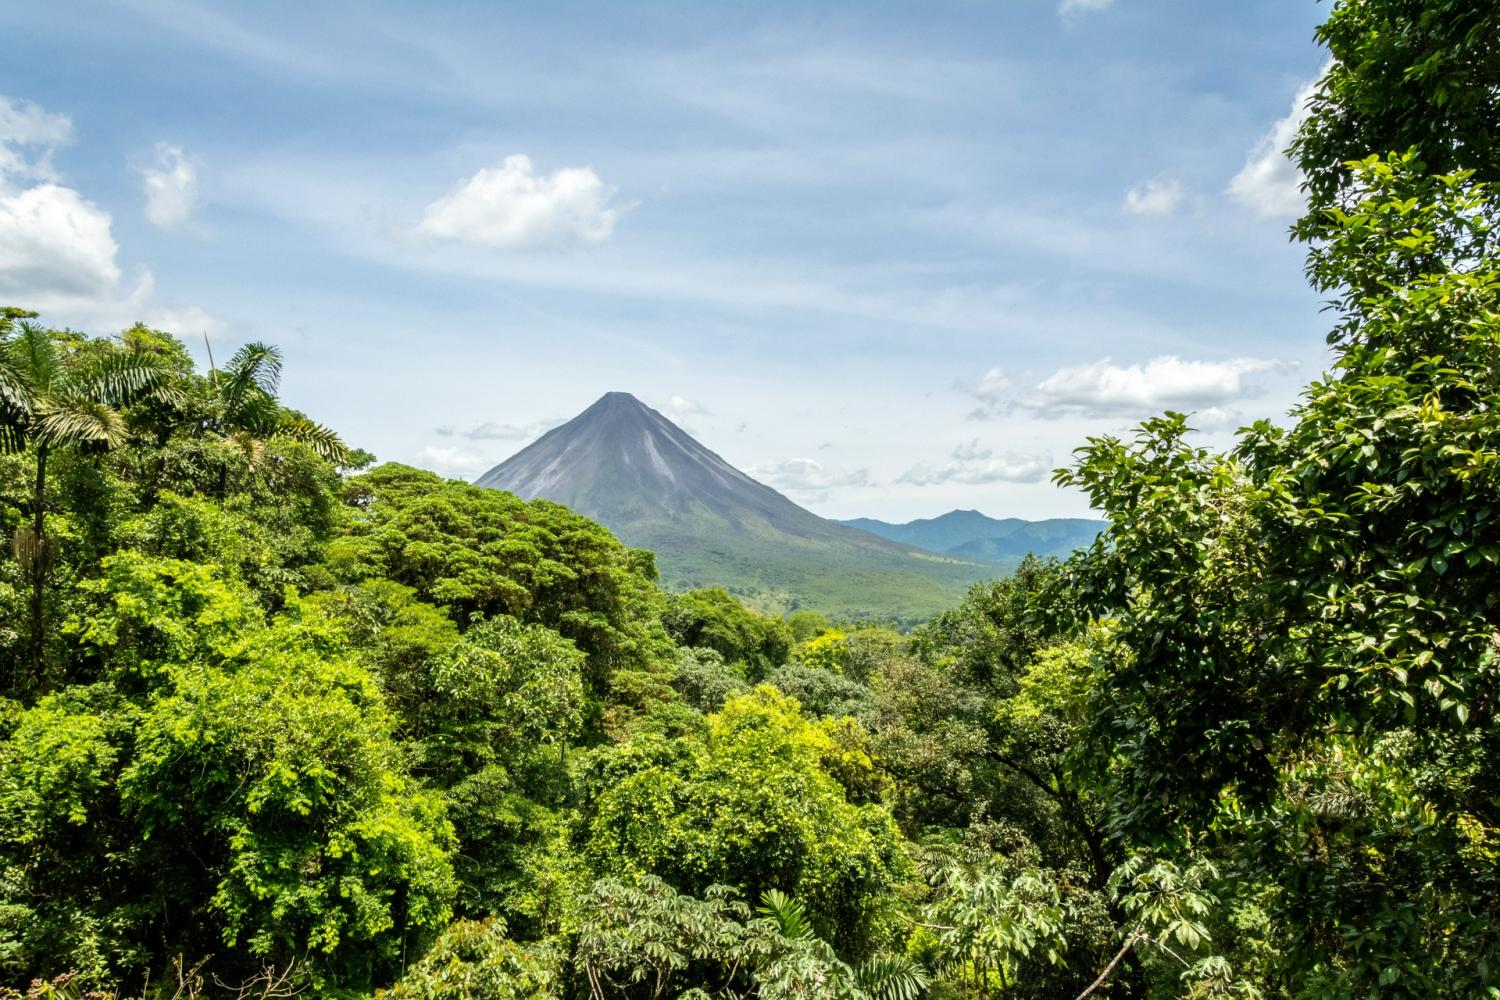 Visit the gorgeous country of Costa Rica for unbeatable views